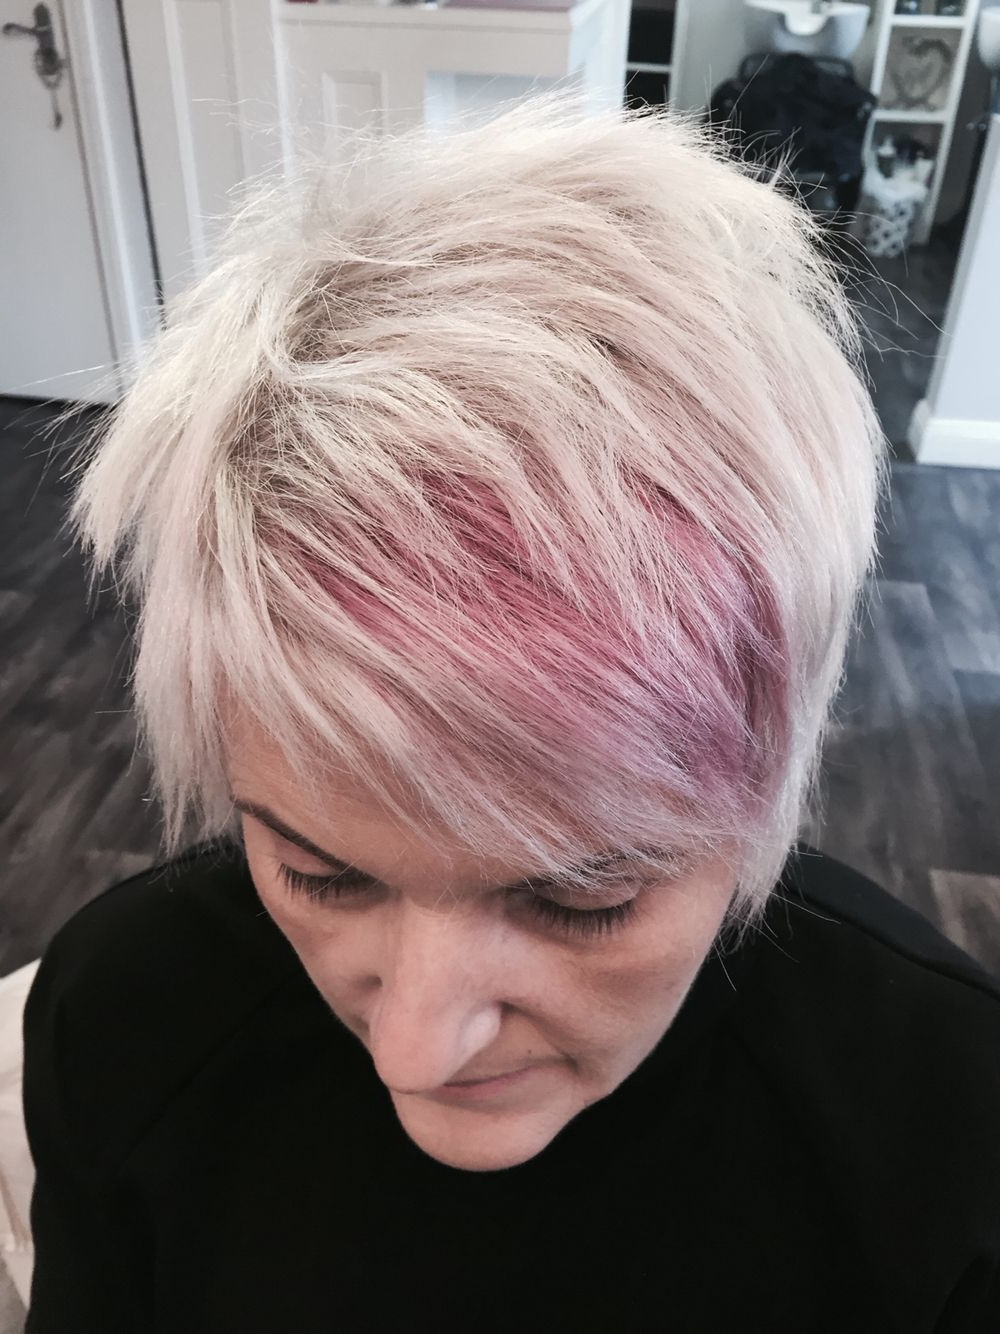 White Blonde And Pastel Pink Textured Pixie Cut | New Hair For Pastel Pink Textured Pixie Hairstyles (View 5 of 20)